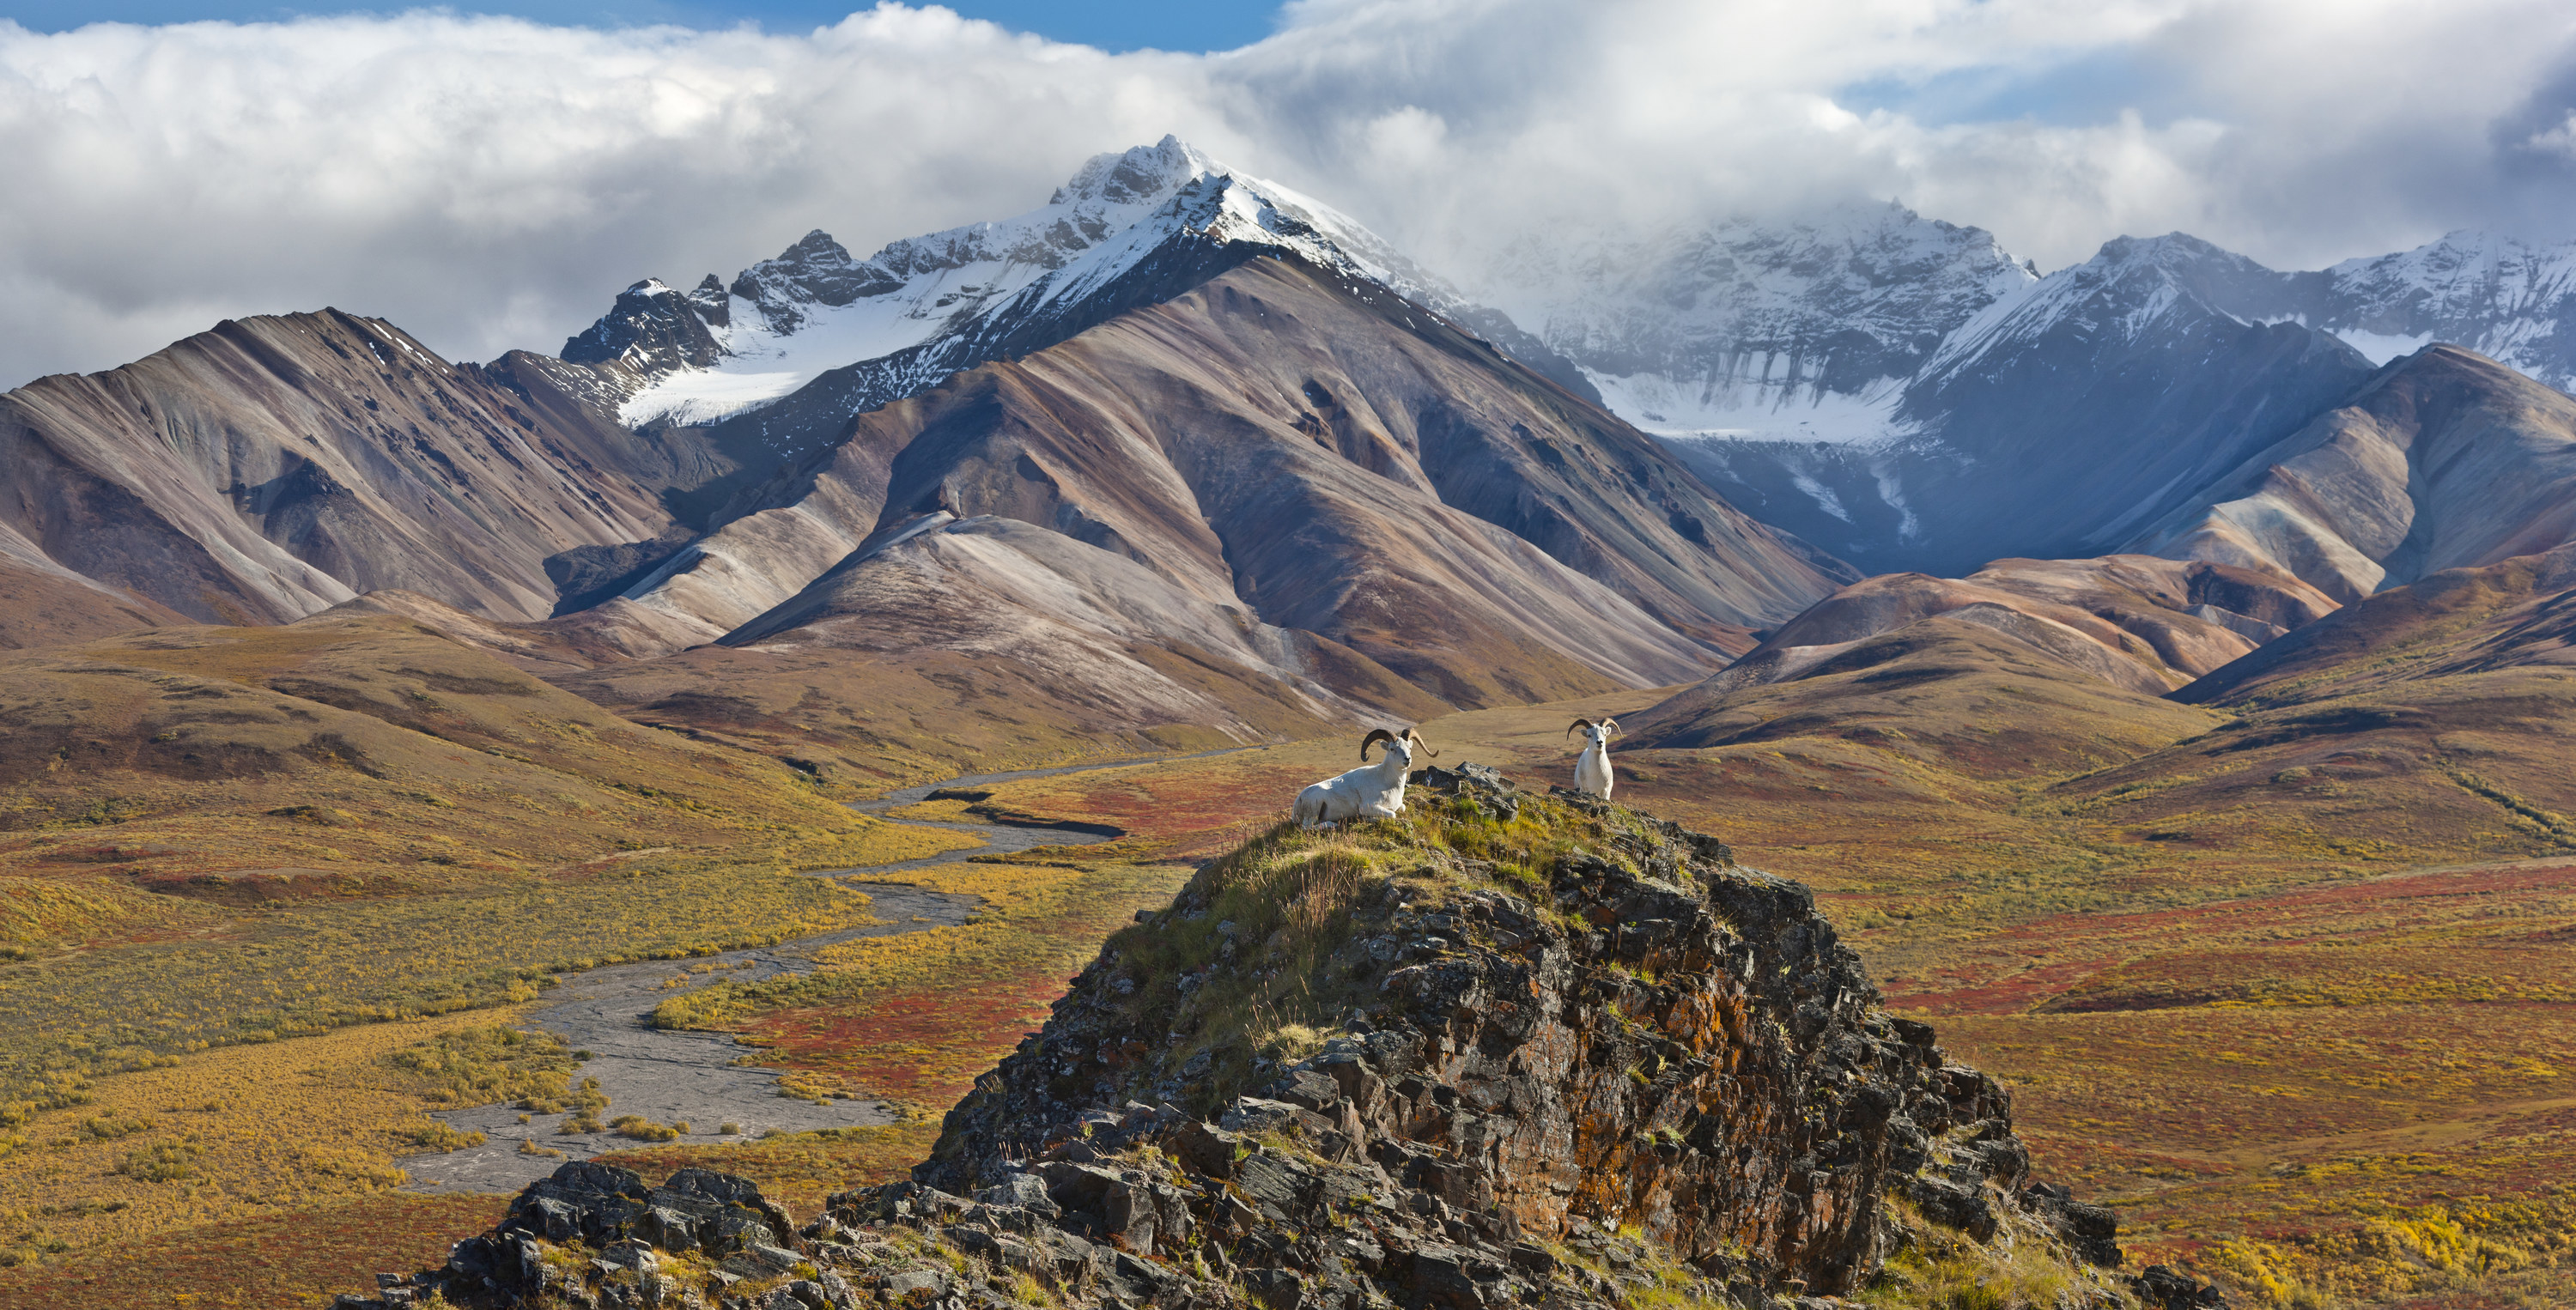 Snow-capped mountain peaks of Denali foregrounded by wildlife sitting on a smaller peak.